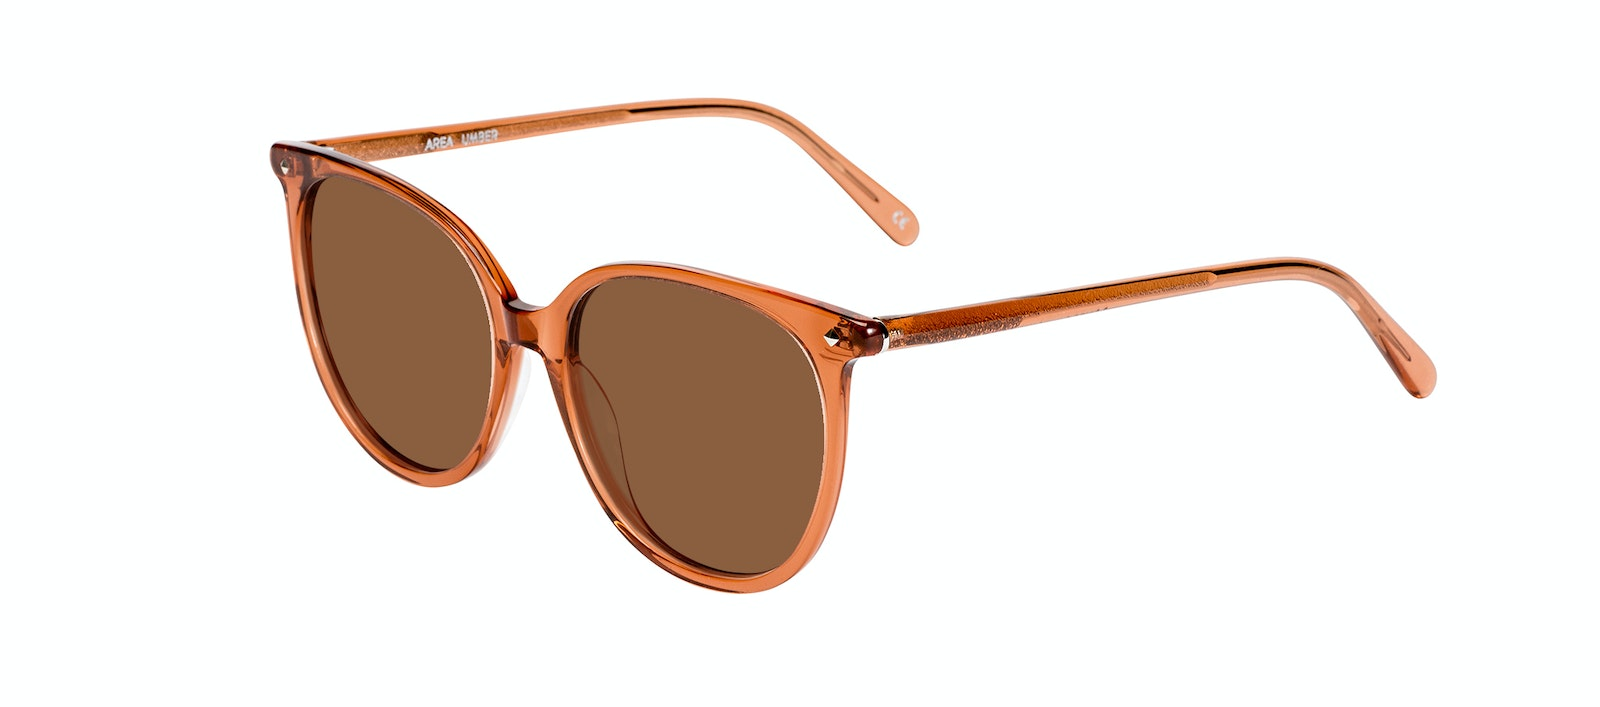 Affordable Fashion Glasses Round Sunglasses Women Area Umber Tilt